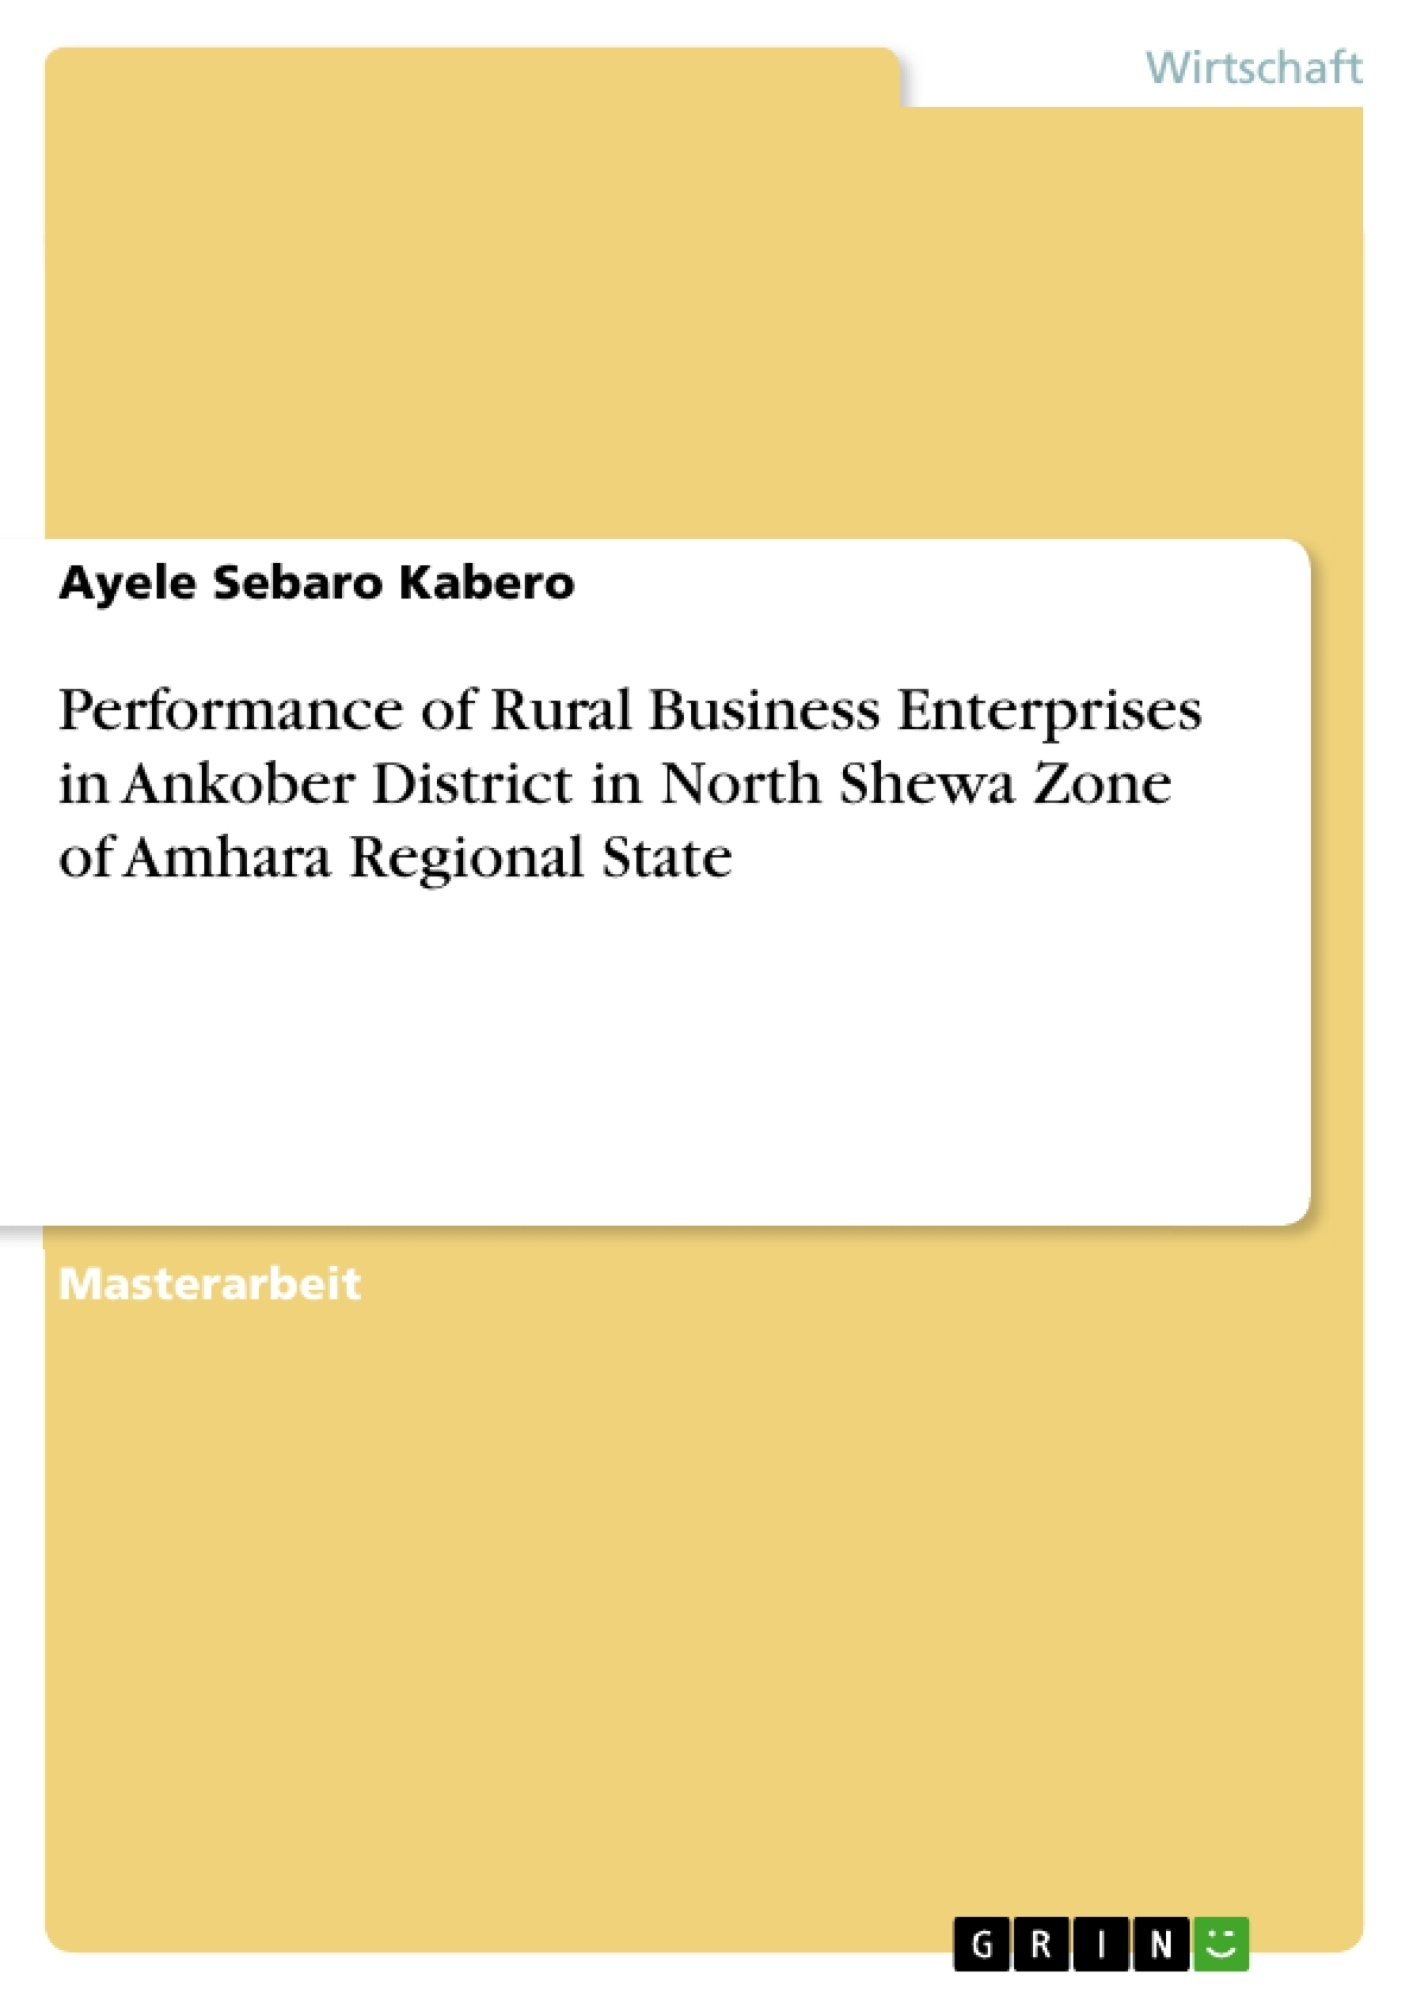 Titel: Performance of Rural Business Enterprises in Ankober District in North Shewa Zone of Amhara Regional State